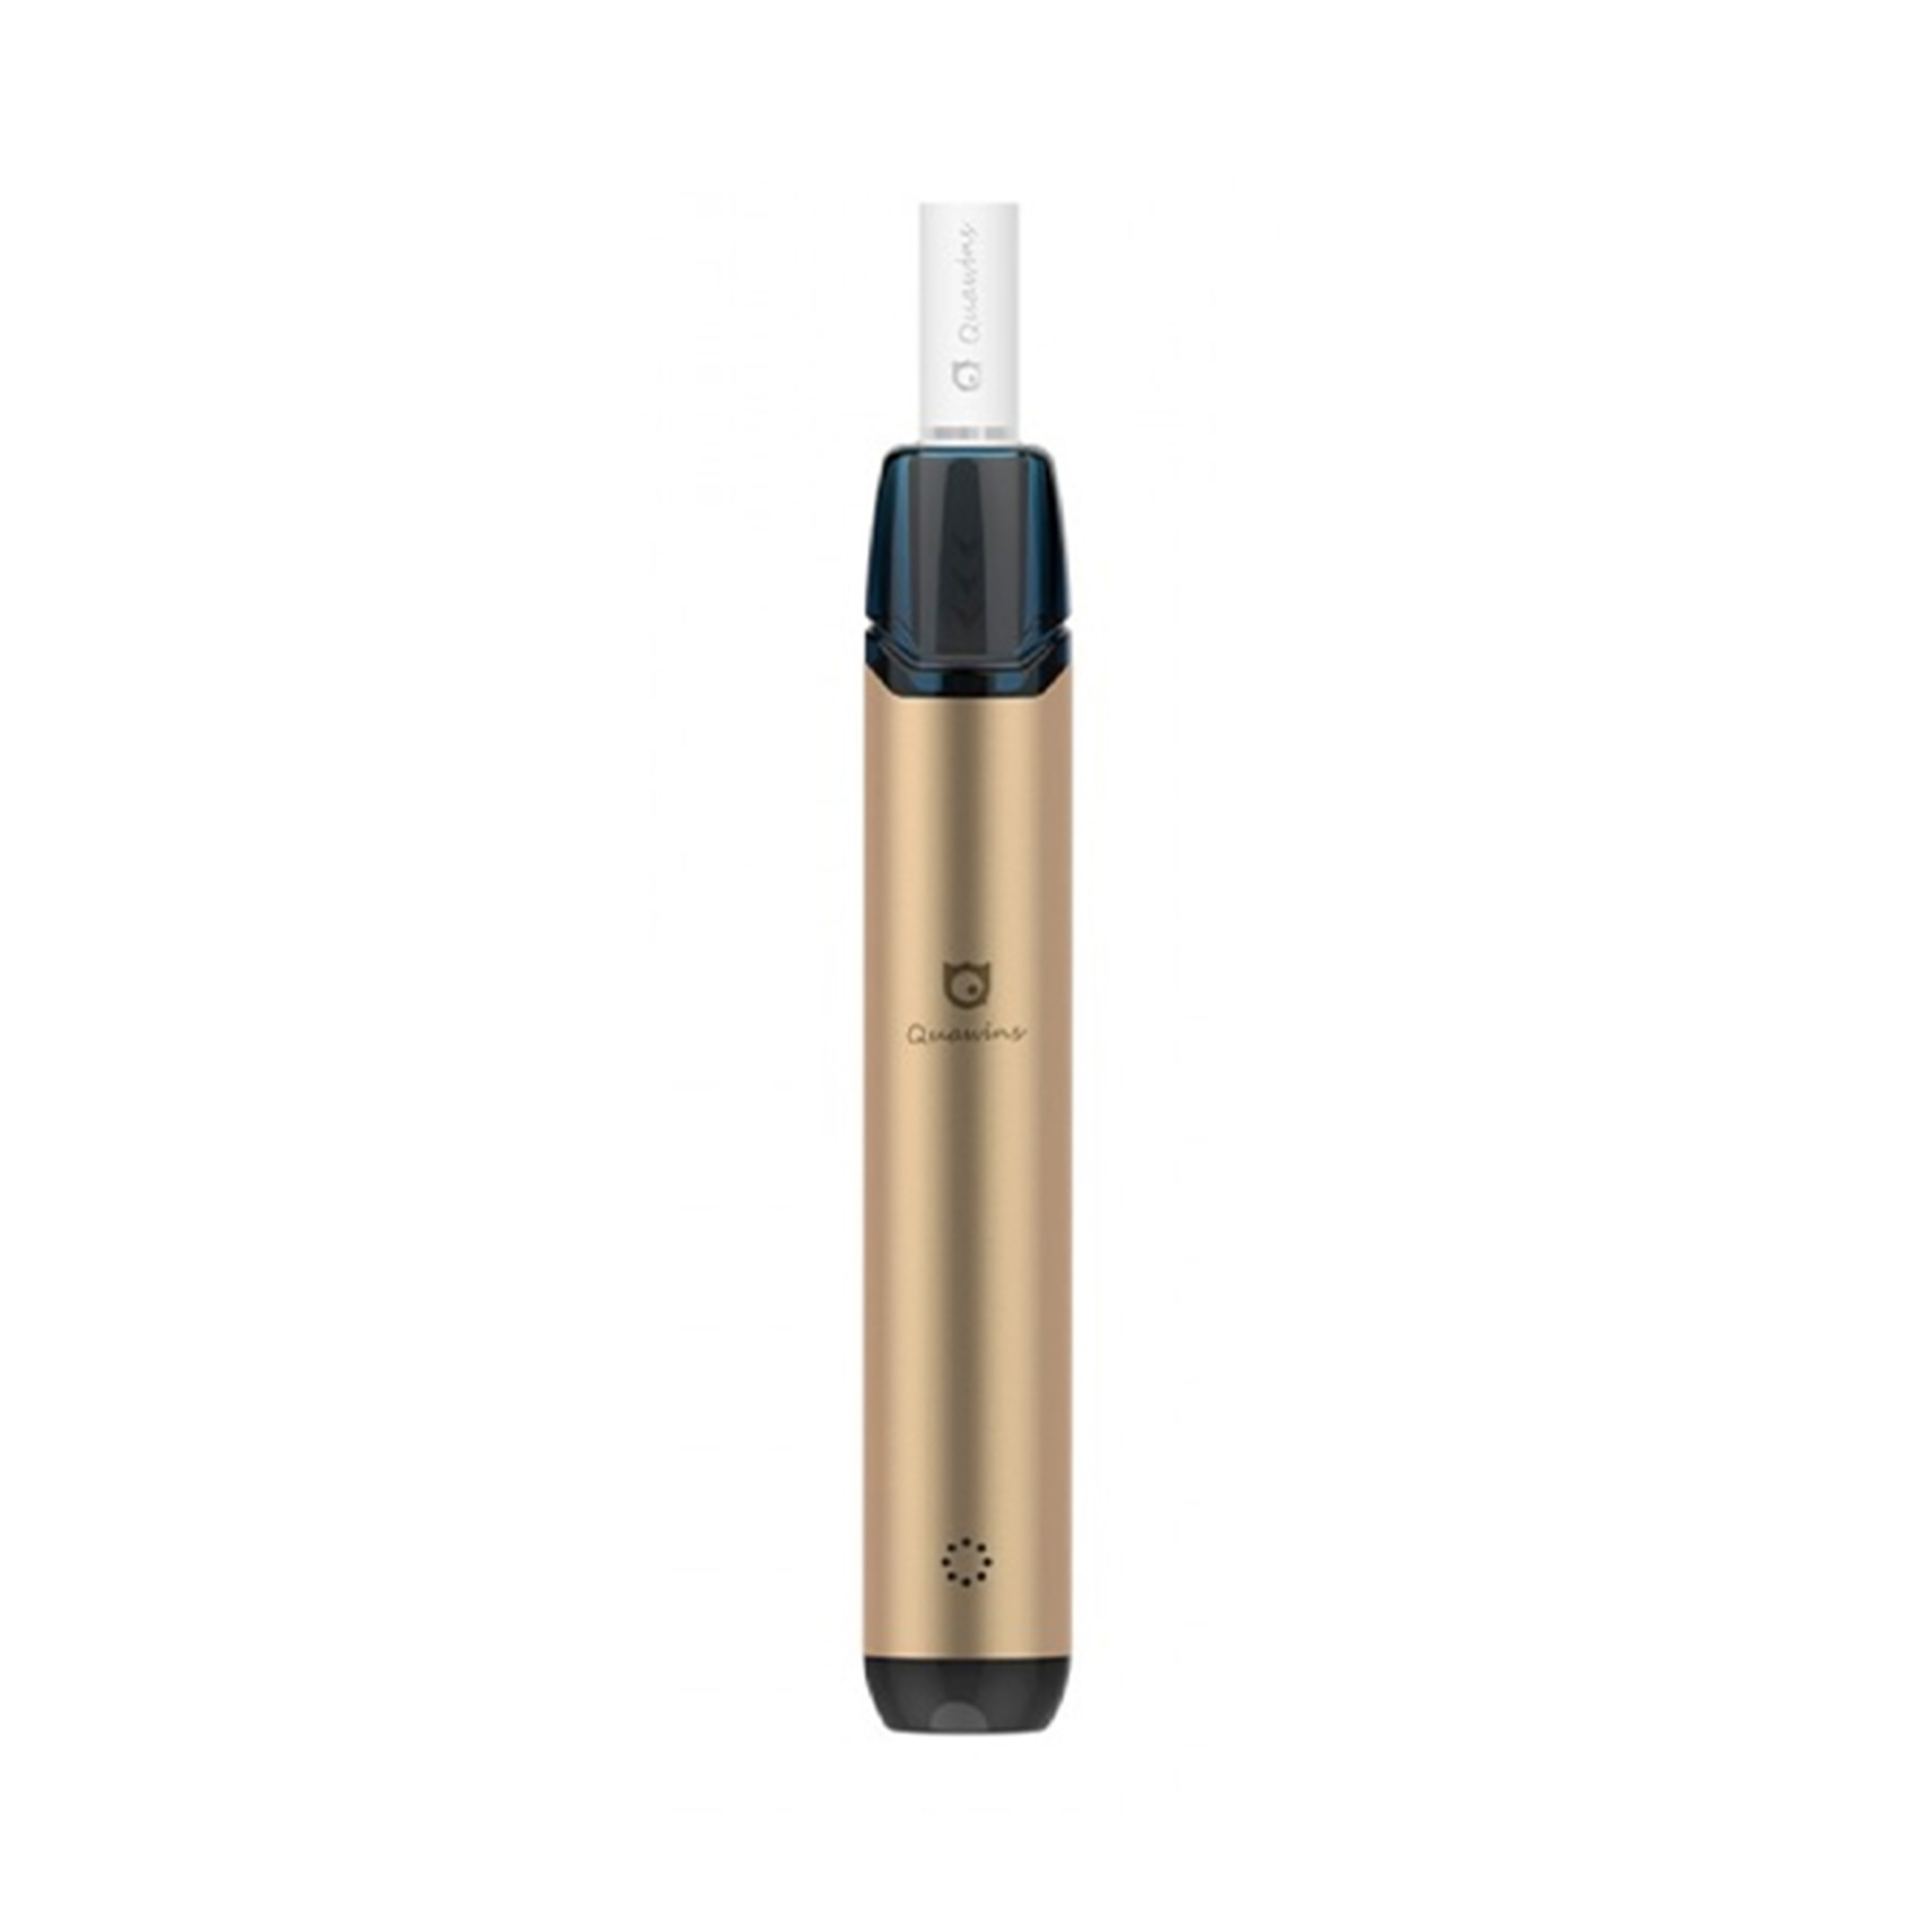 Quawins Vstick Pro Pod Kit in Gold